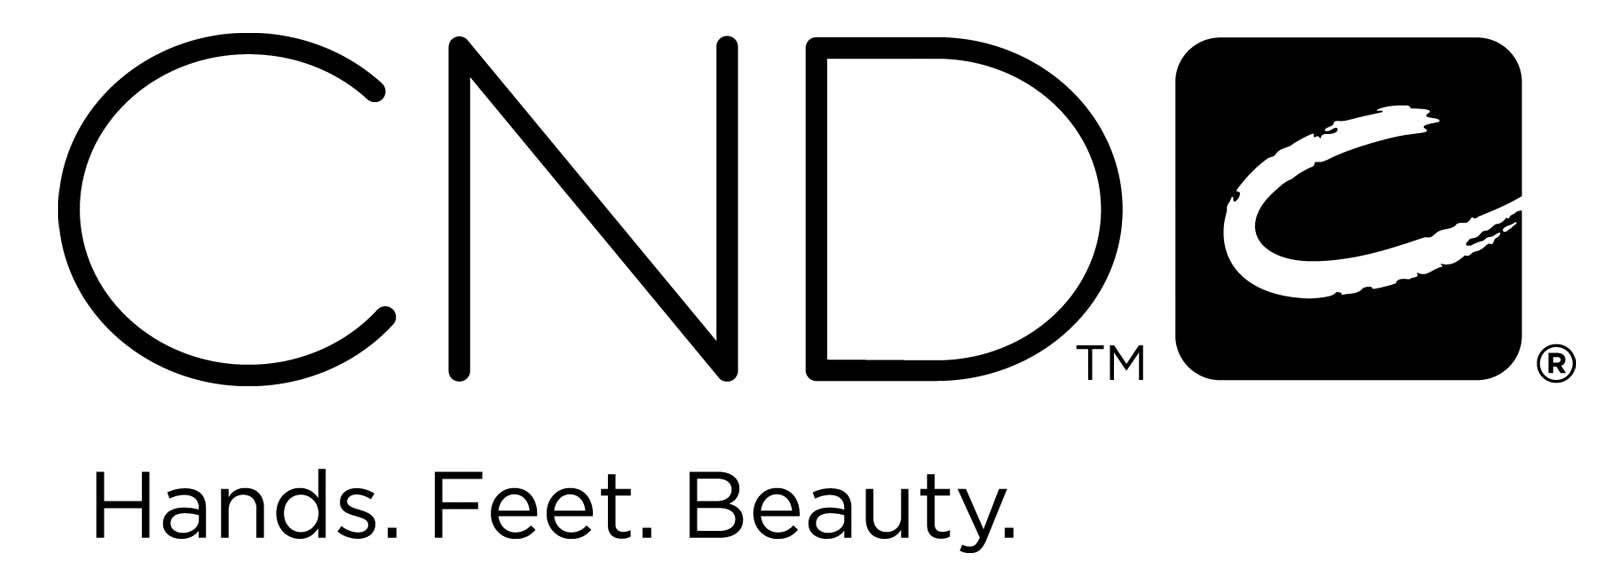 CND vinylux & shallac, a lasting polish alternative for natural nails available @ Moriah Brandons Salon.  Call today for your next appointment 407-682-7677. www.moriahbrandons.com